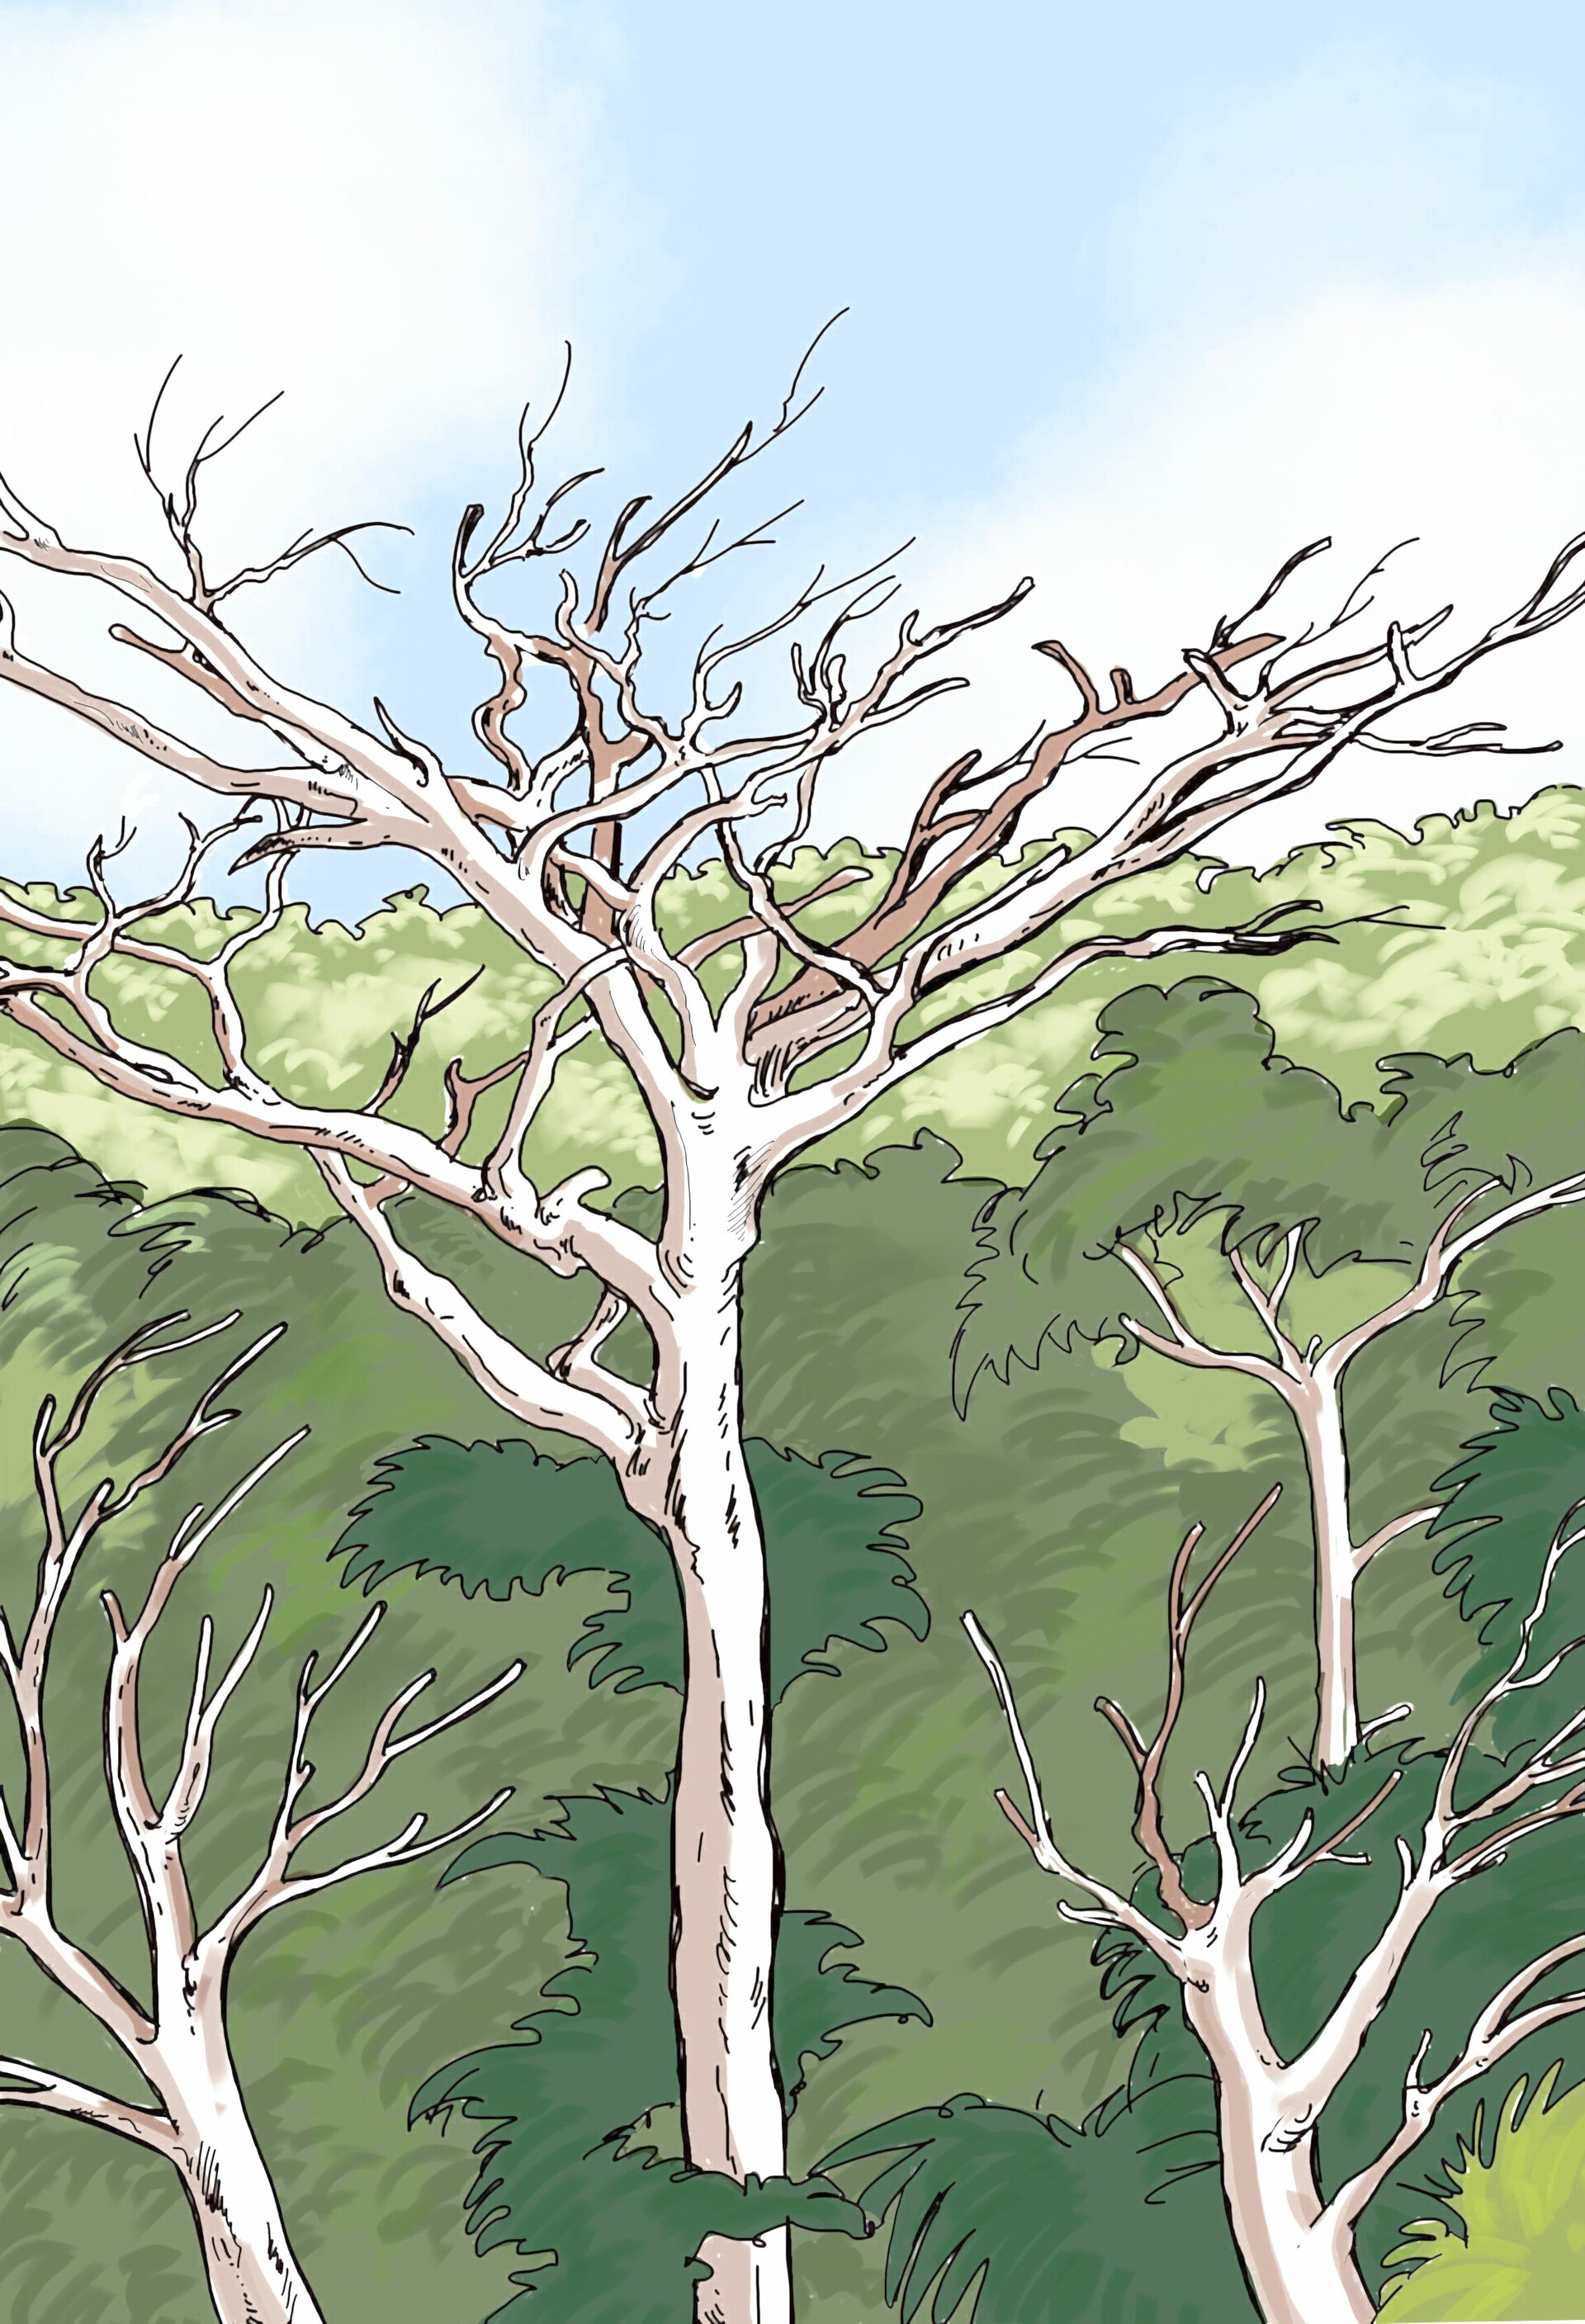 Jungle back ground  drawing created with Sketchbook Pro.